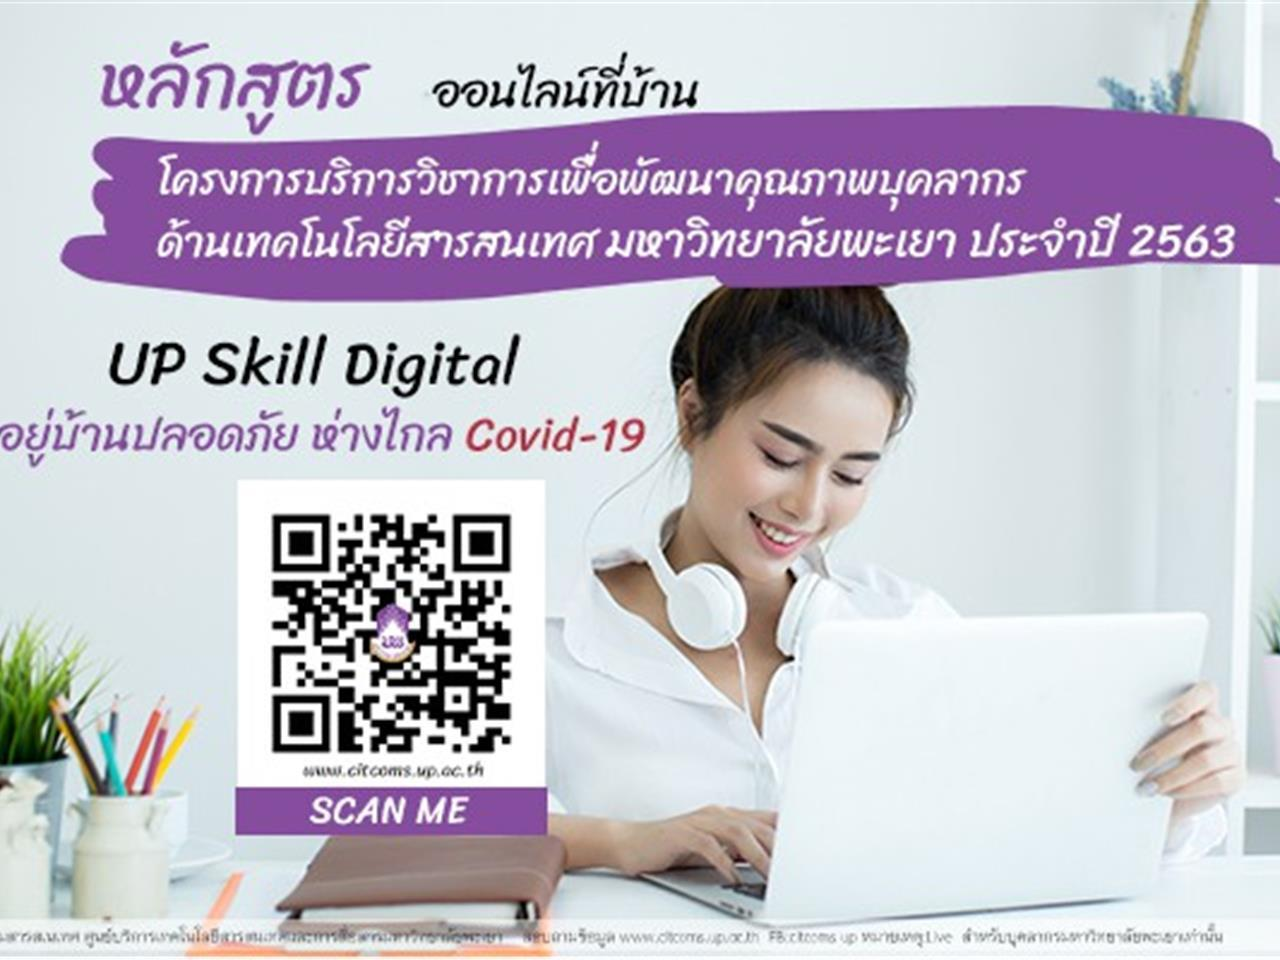 CITSCOMS, University of Phayao, is offering online courses due to COVID-19